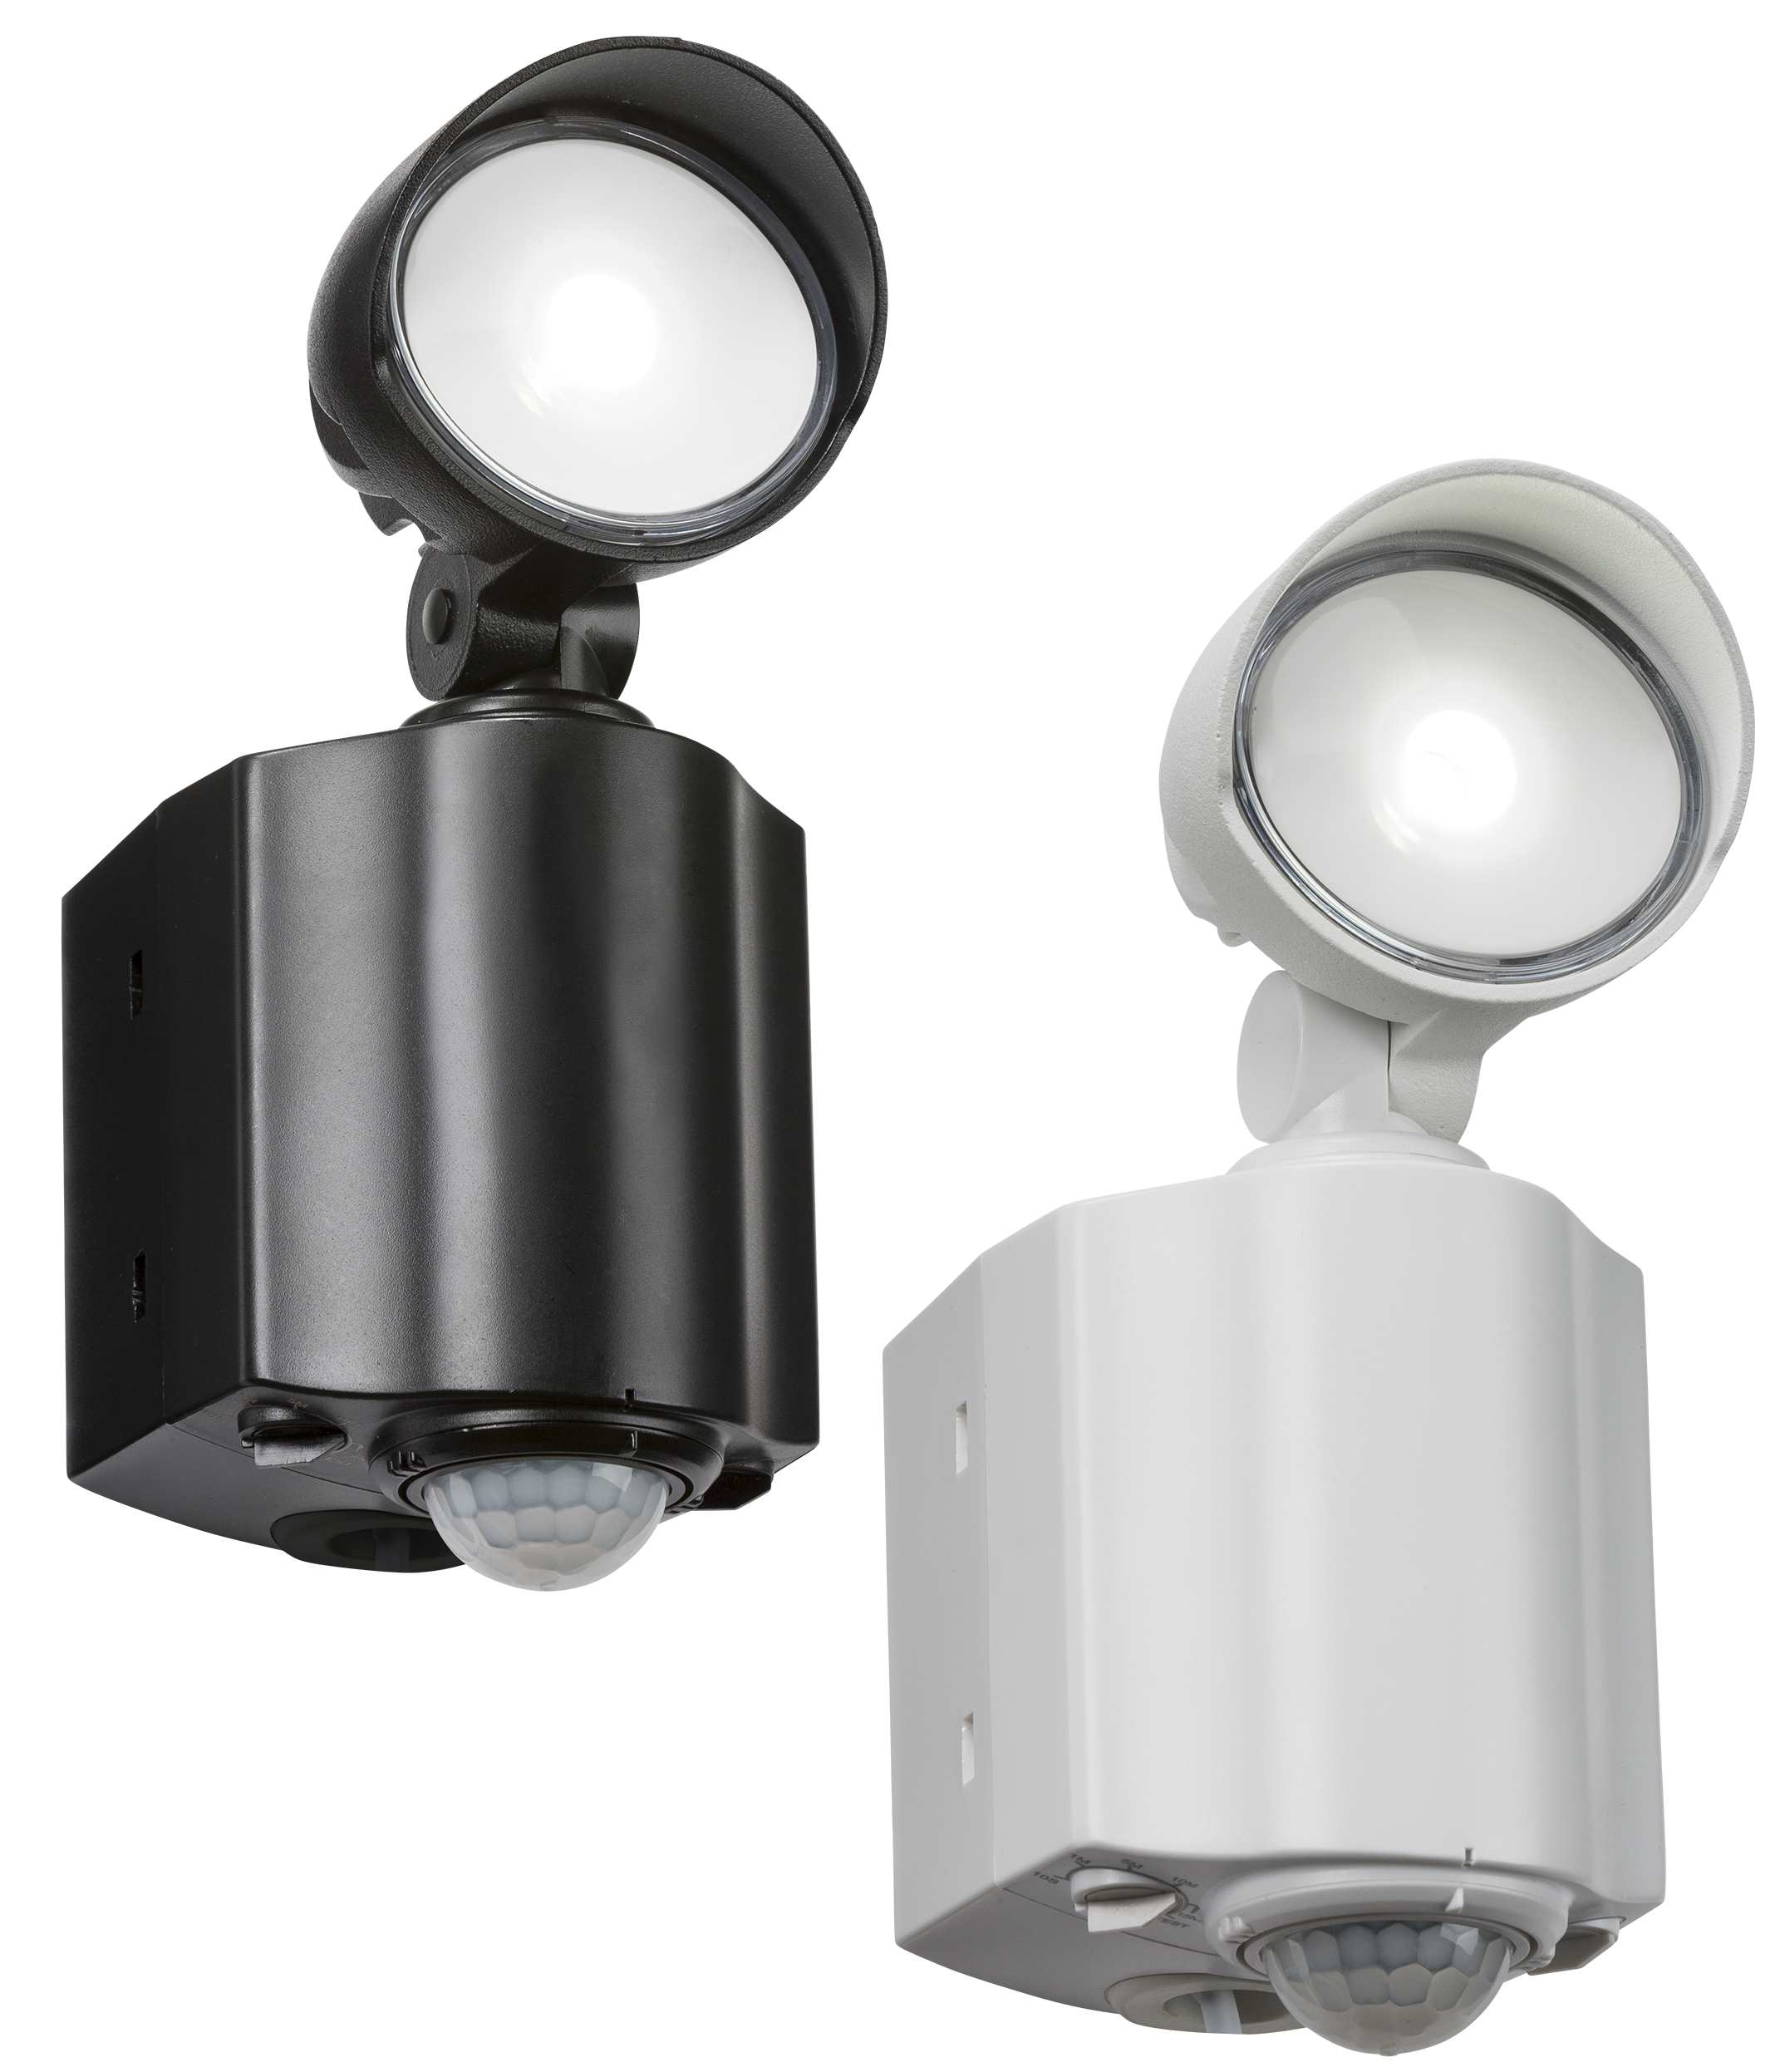 Knightsbridge 8w Led Single Spot Security Light With Pir Black Or White